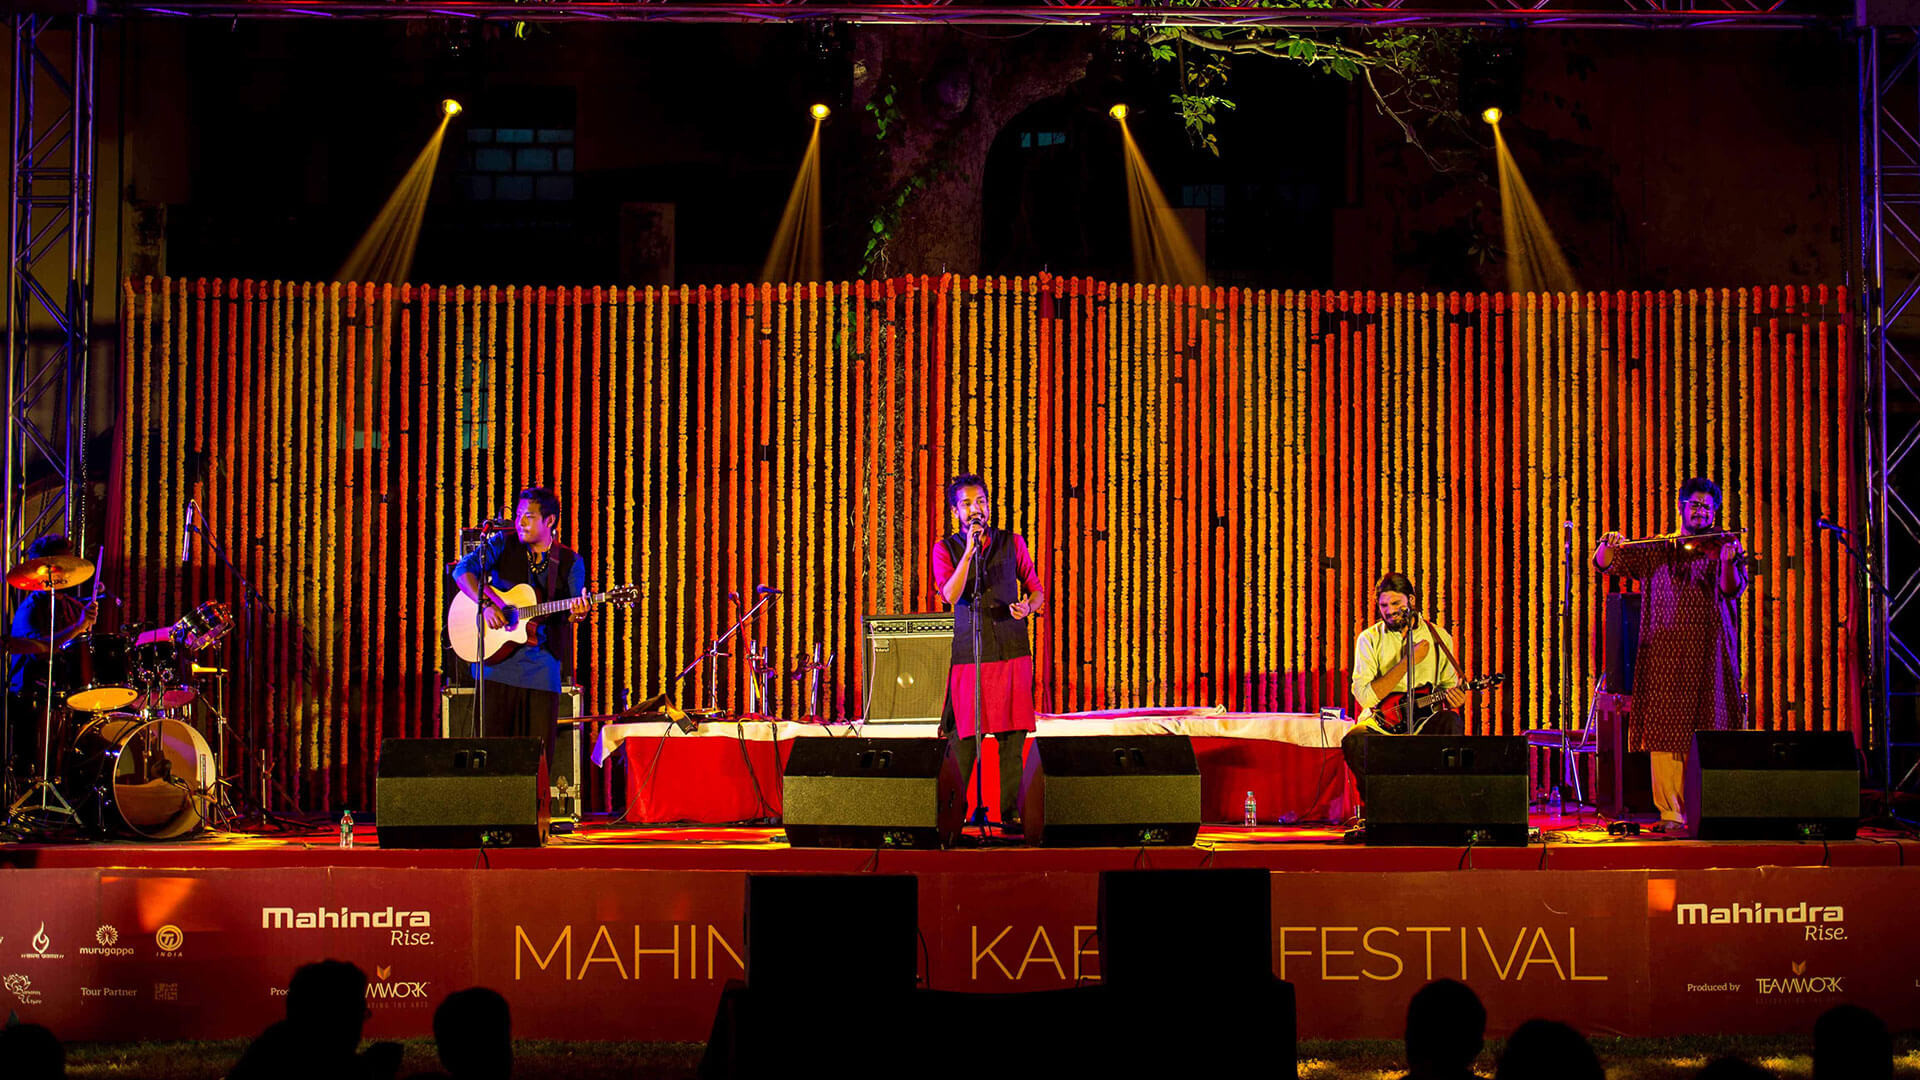 Mahindra_Kabira_Festival_Attractions